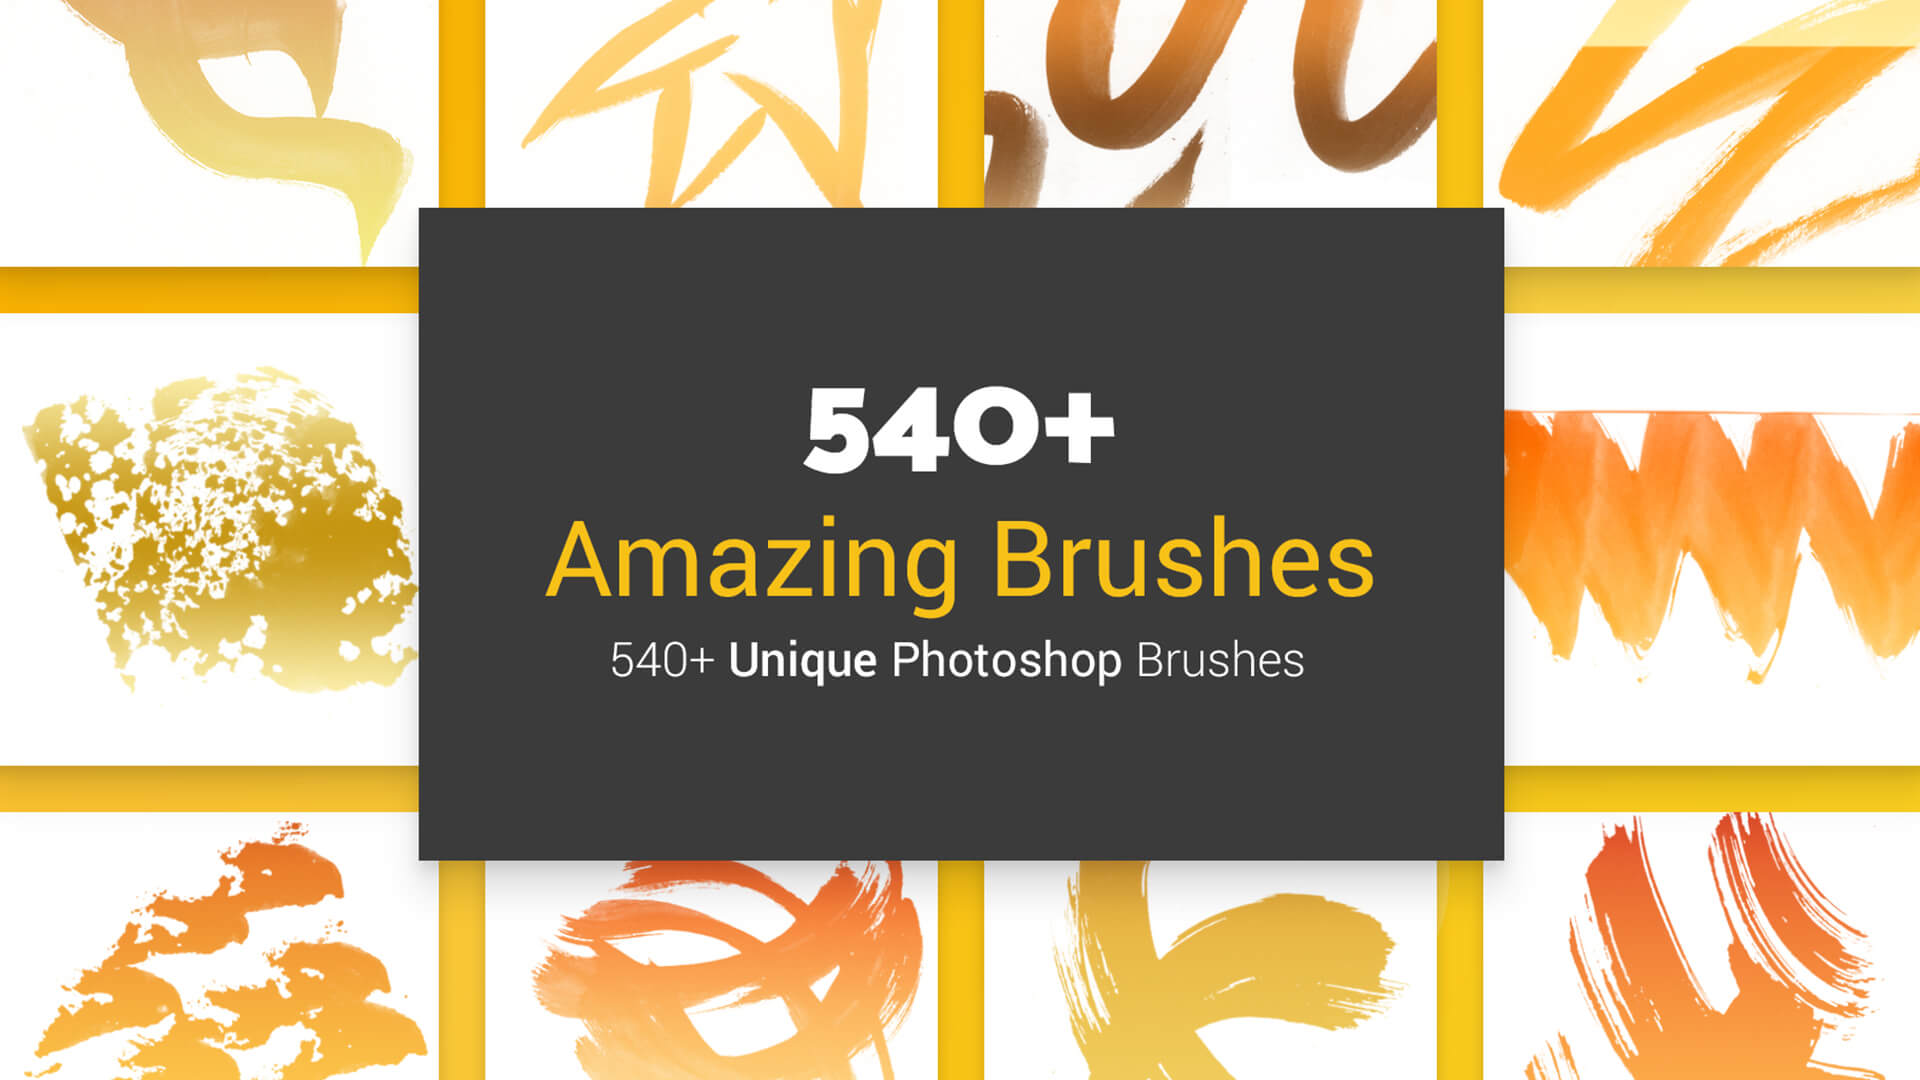 The Big Graphic Design Resources Bundle 540 Amazing Brushes